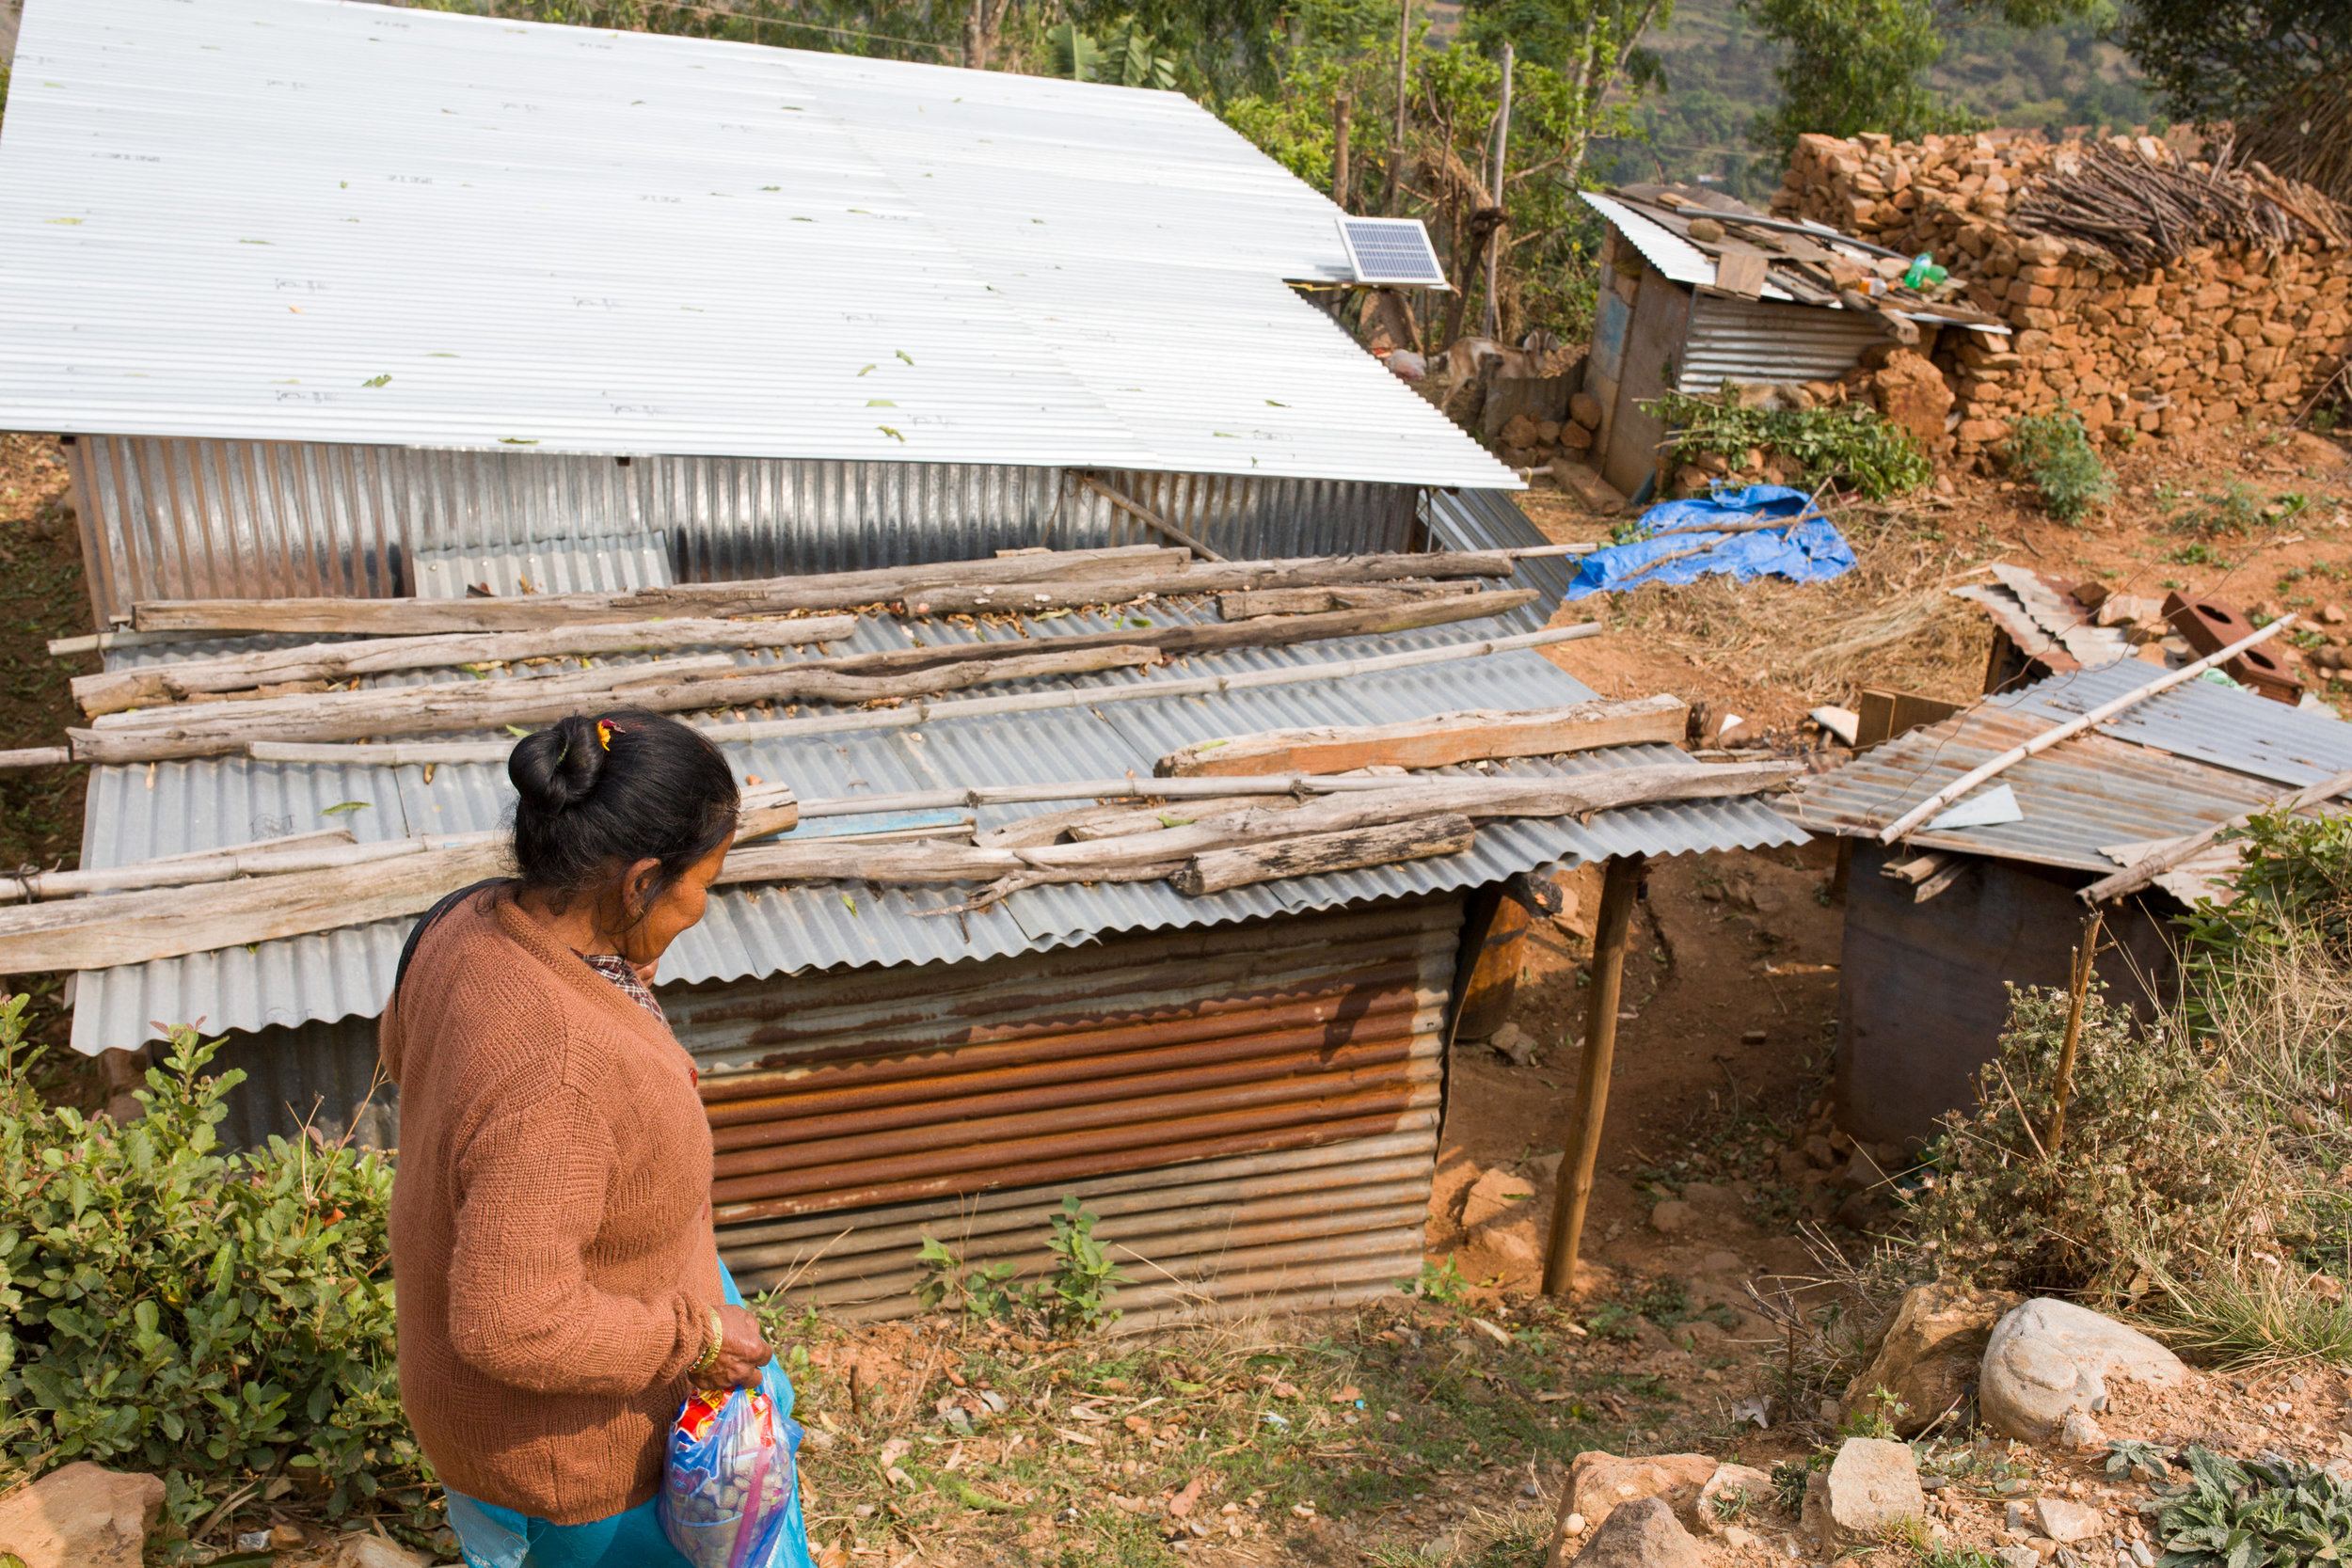 Keshari Napit walks down to her new temporary house, built by KSS with funds raised by Nepalis working outside the country. The house (with the uncluttered roof) has three rooms, solar lighting, a shaded veranda, and is constructed to withstand the monsoon rain and winds.